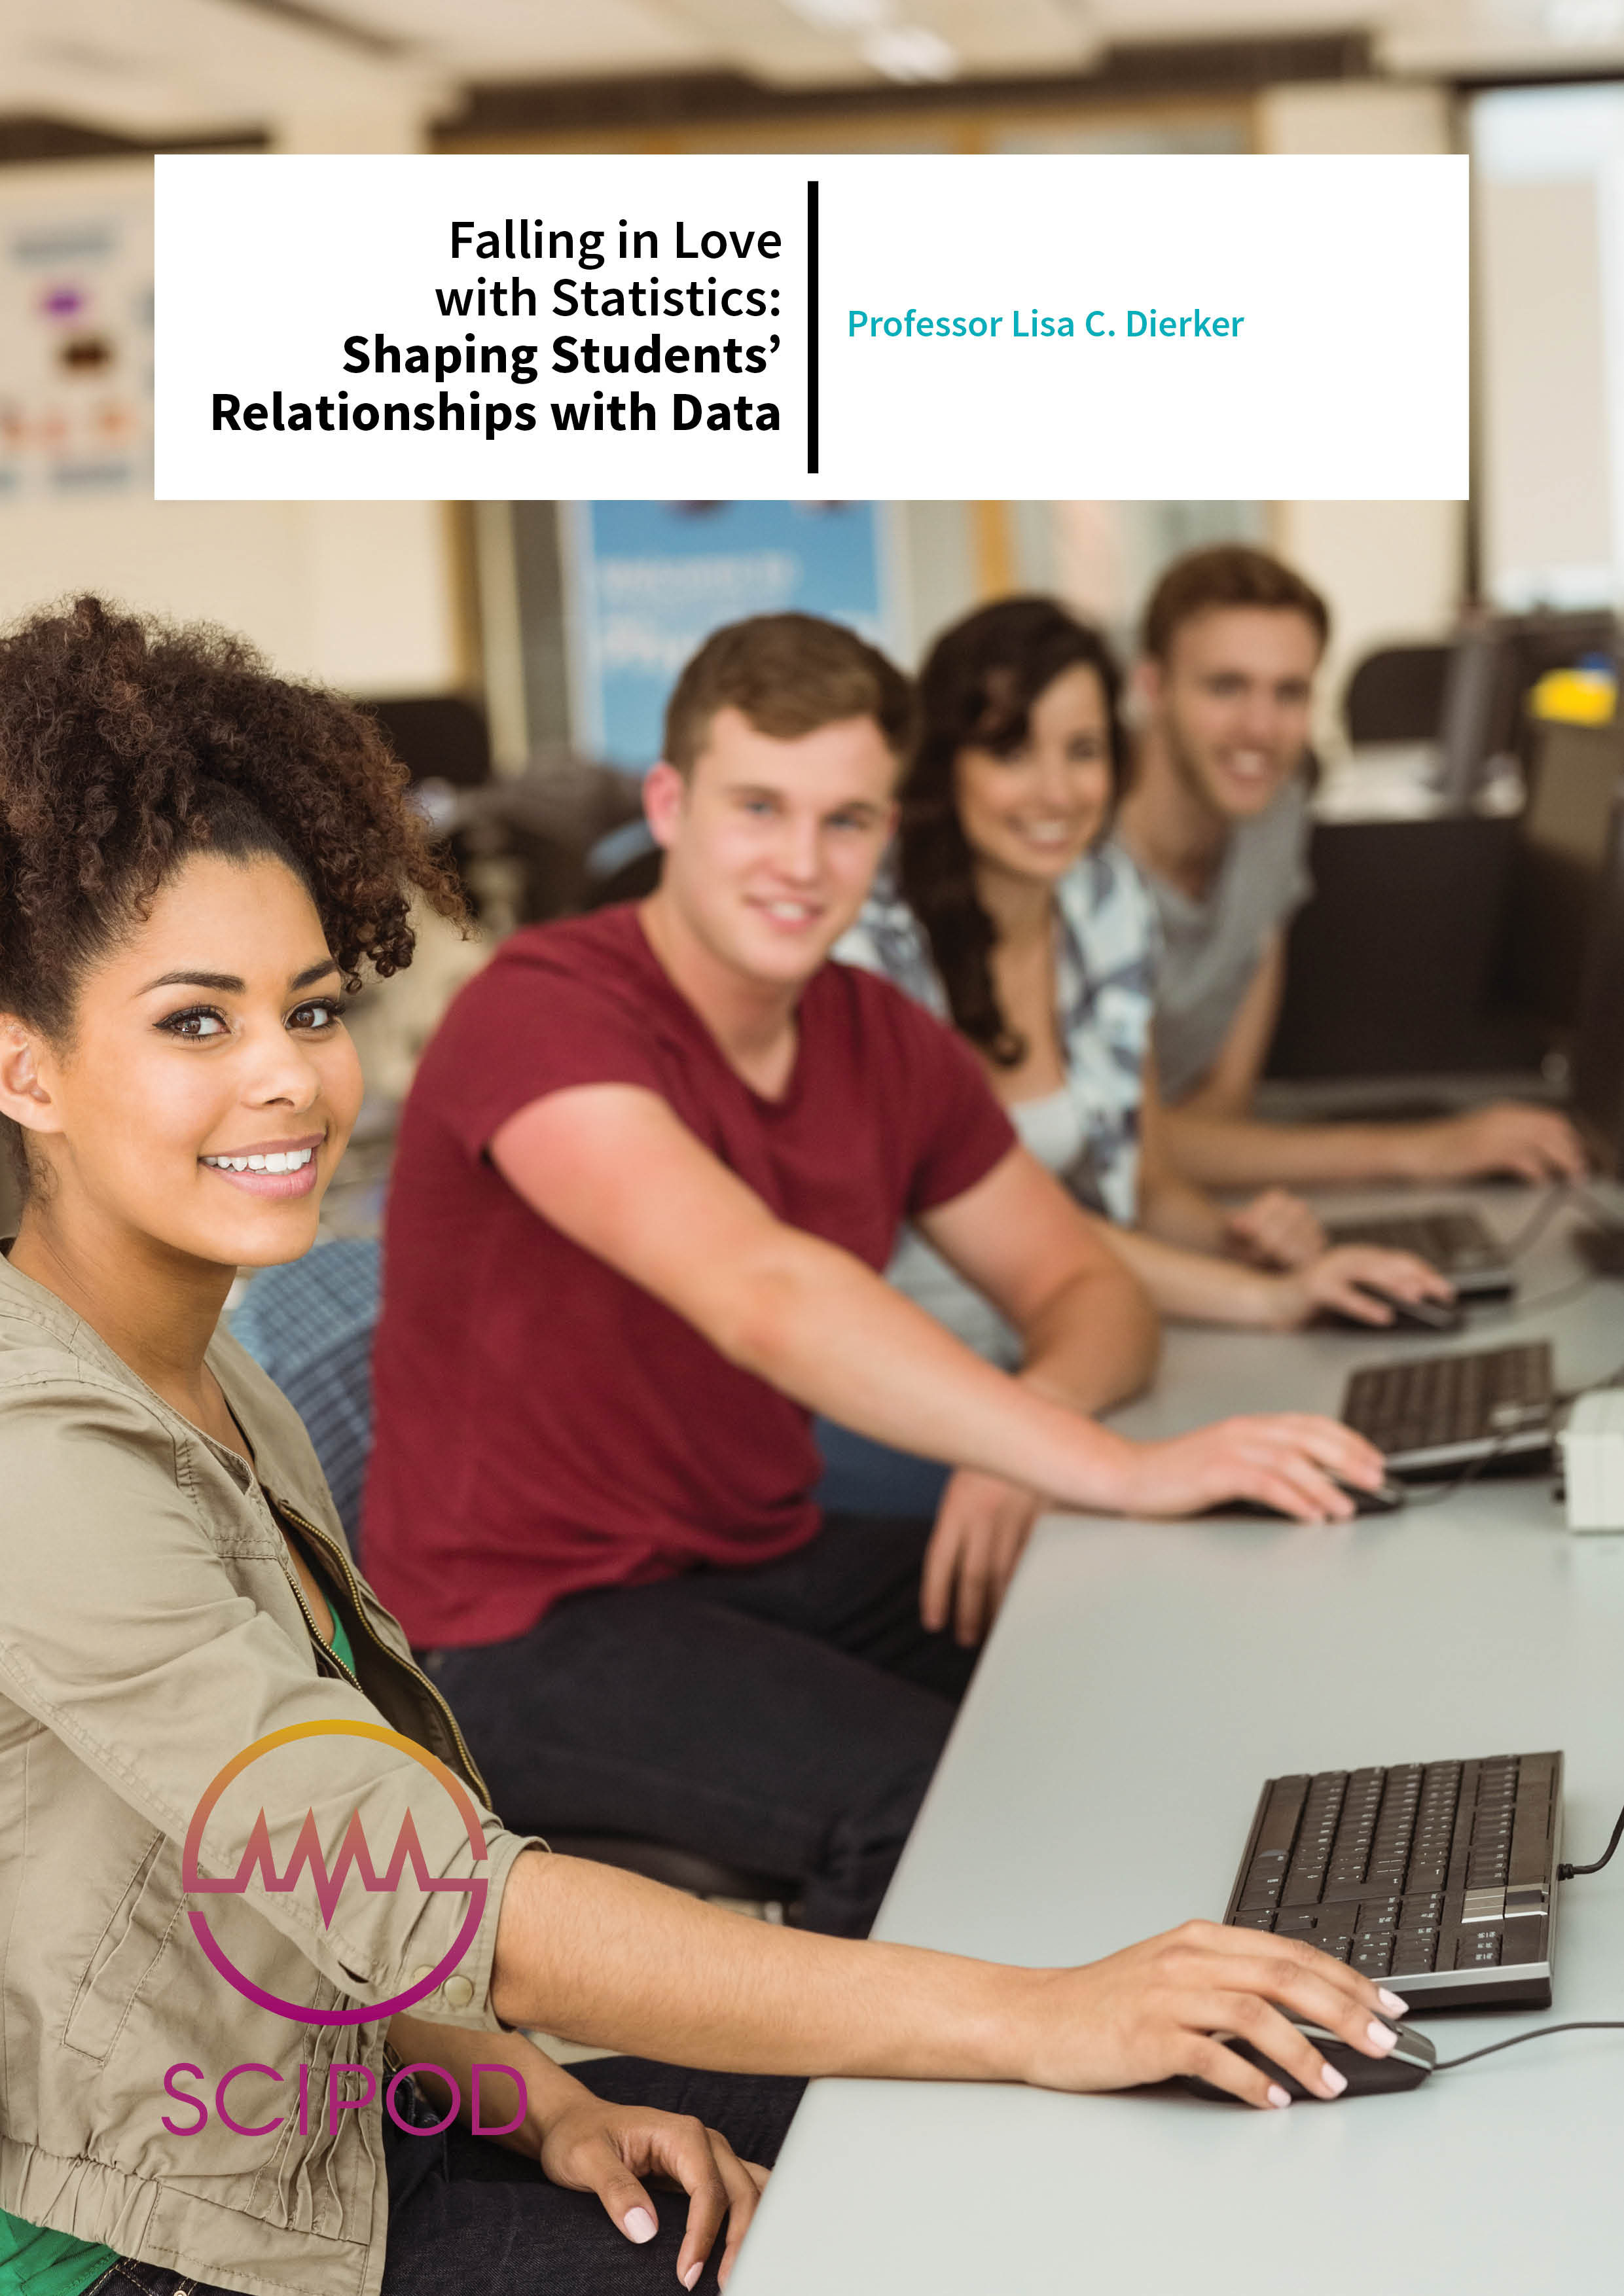 Falling in Love with Statistics Shaping Students' Relationships with Data – Prof Lisa C. Dierker, Wesleyan University